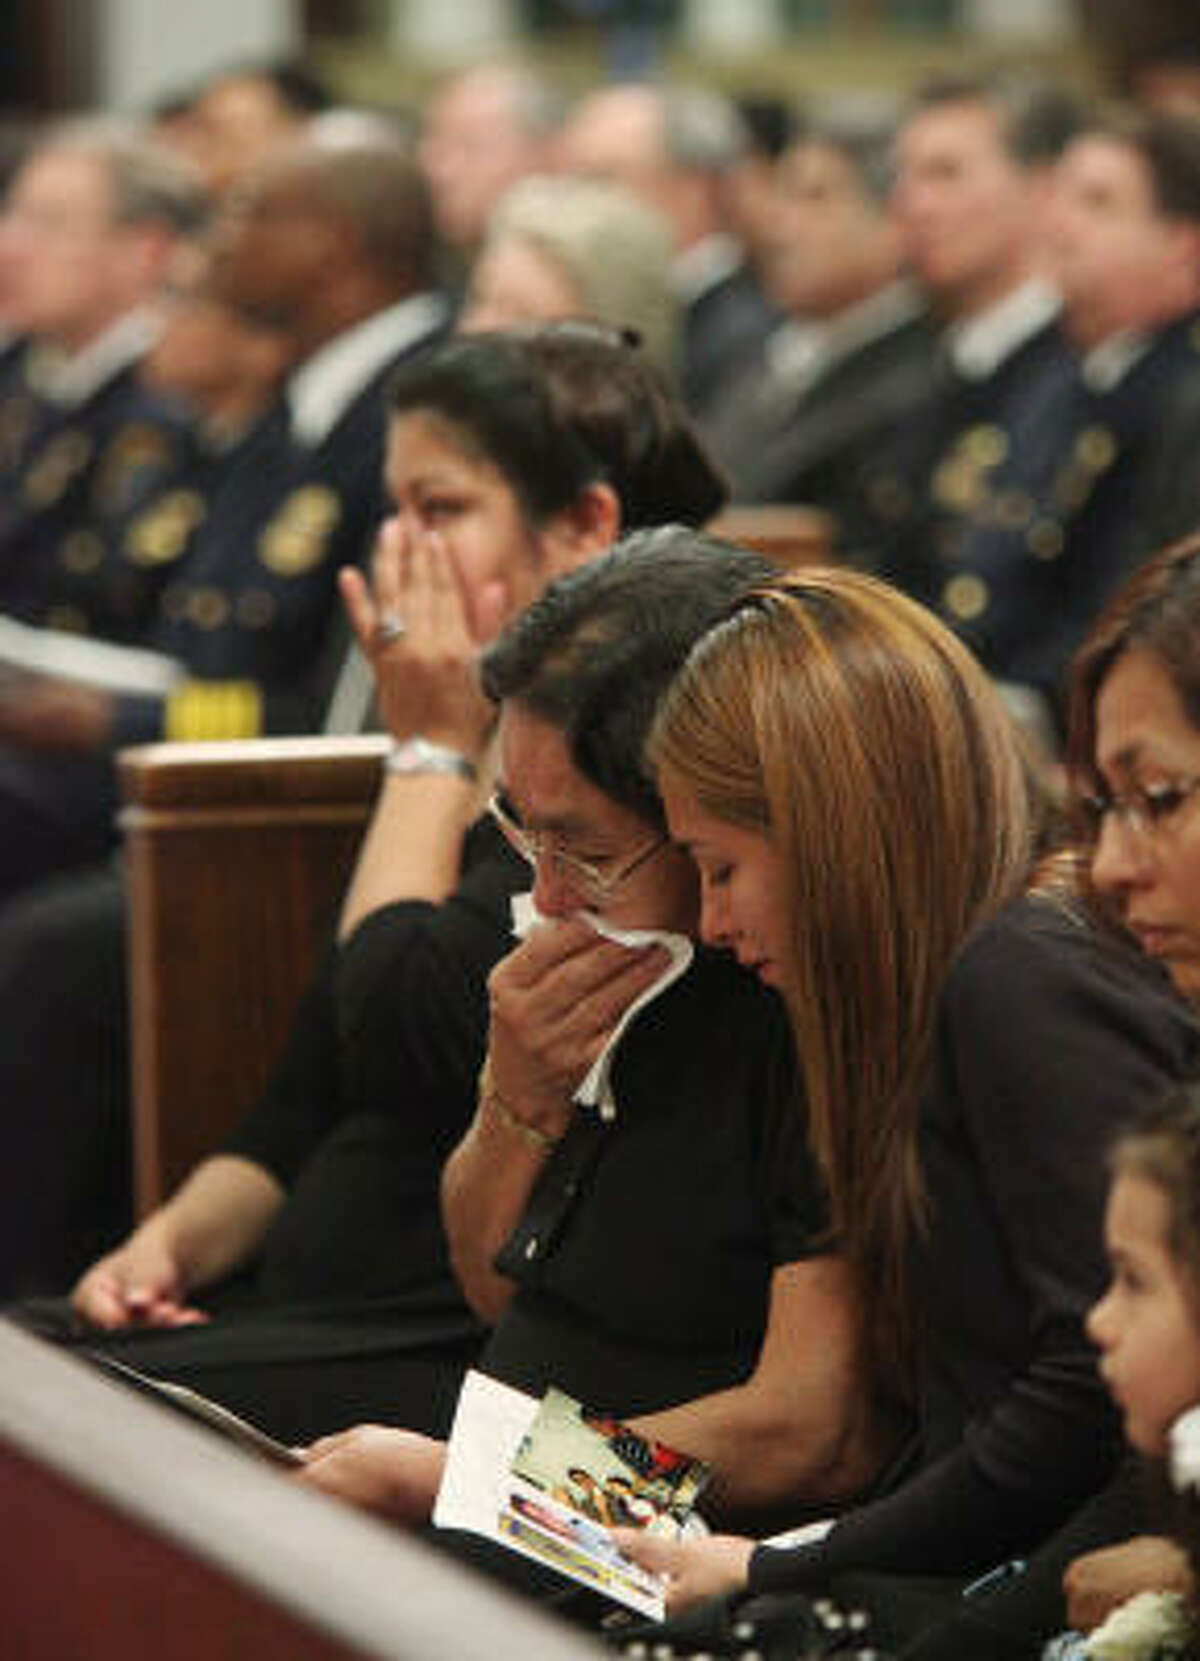 Family members weep during the funeral mass for Houston Police Officer Eydelmen Mani at St. Charles Borromeo Catholic Church.